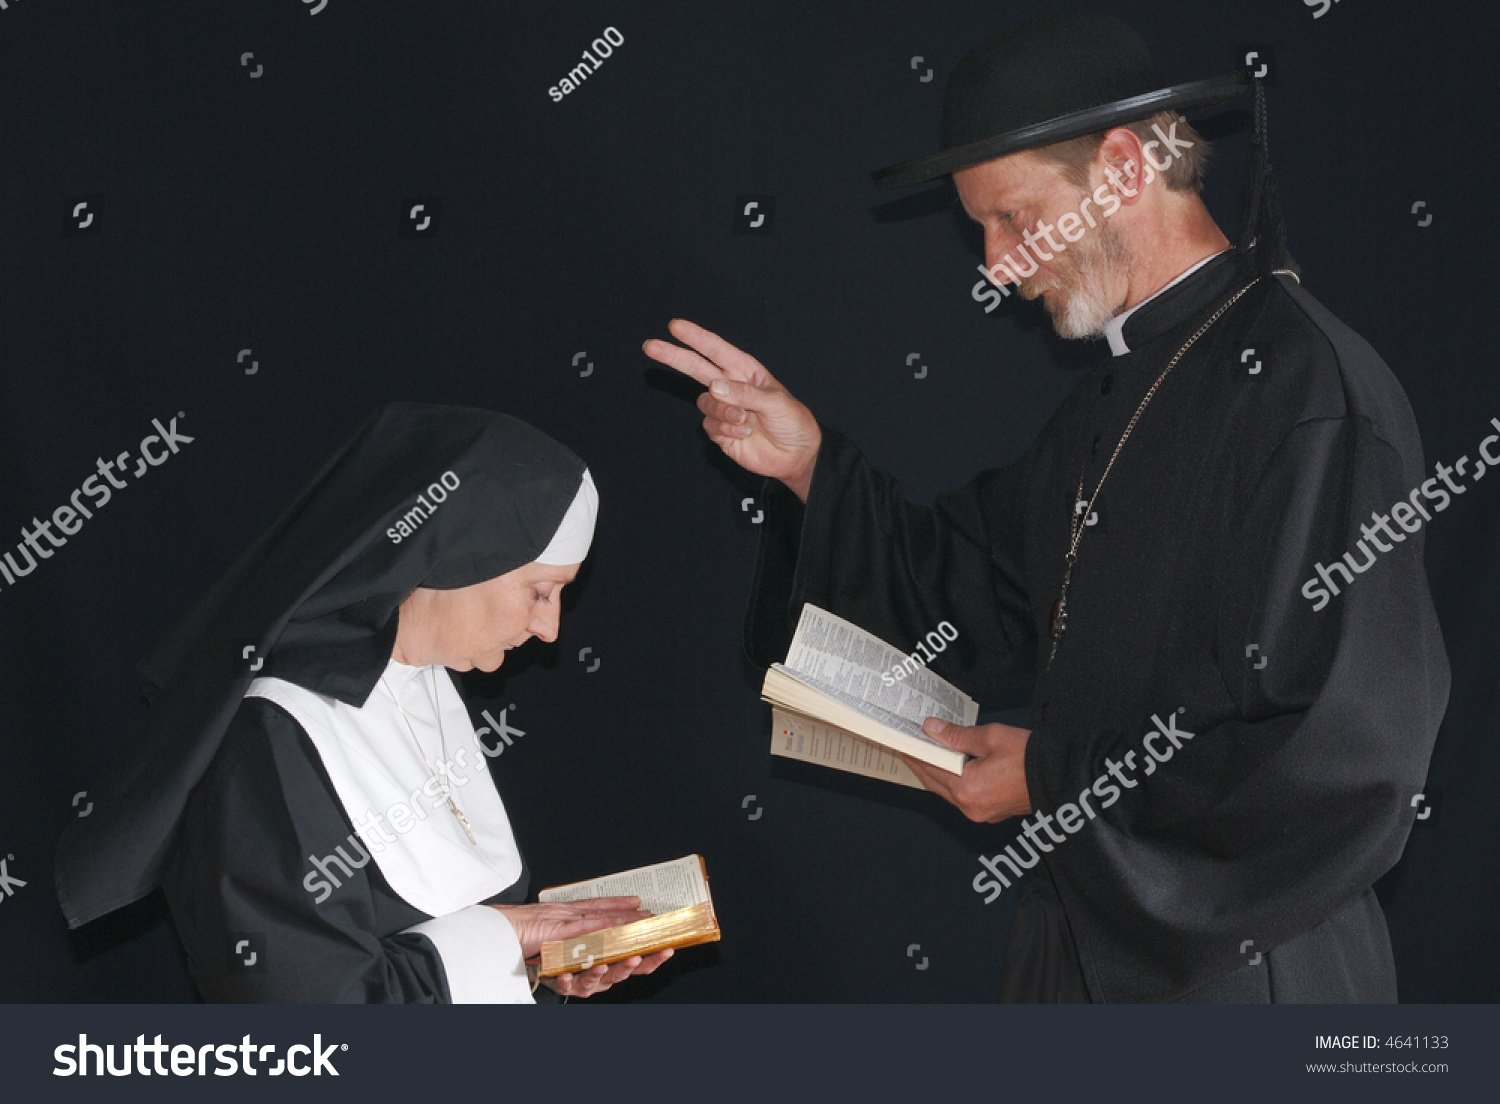 christianity and priest The bible's teaching on women ministers and priests what does the bible say about women ministers, pastors or priests what role should priests, etc, is controversial within christianity many of the larger christian denominations -- anglican, episcopal, evangelical lutheran.